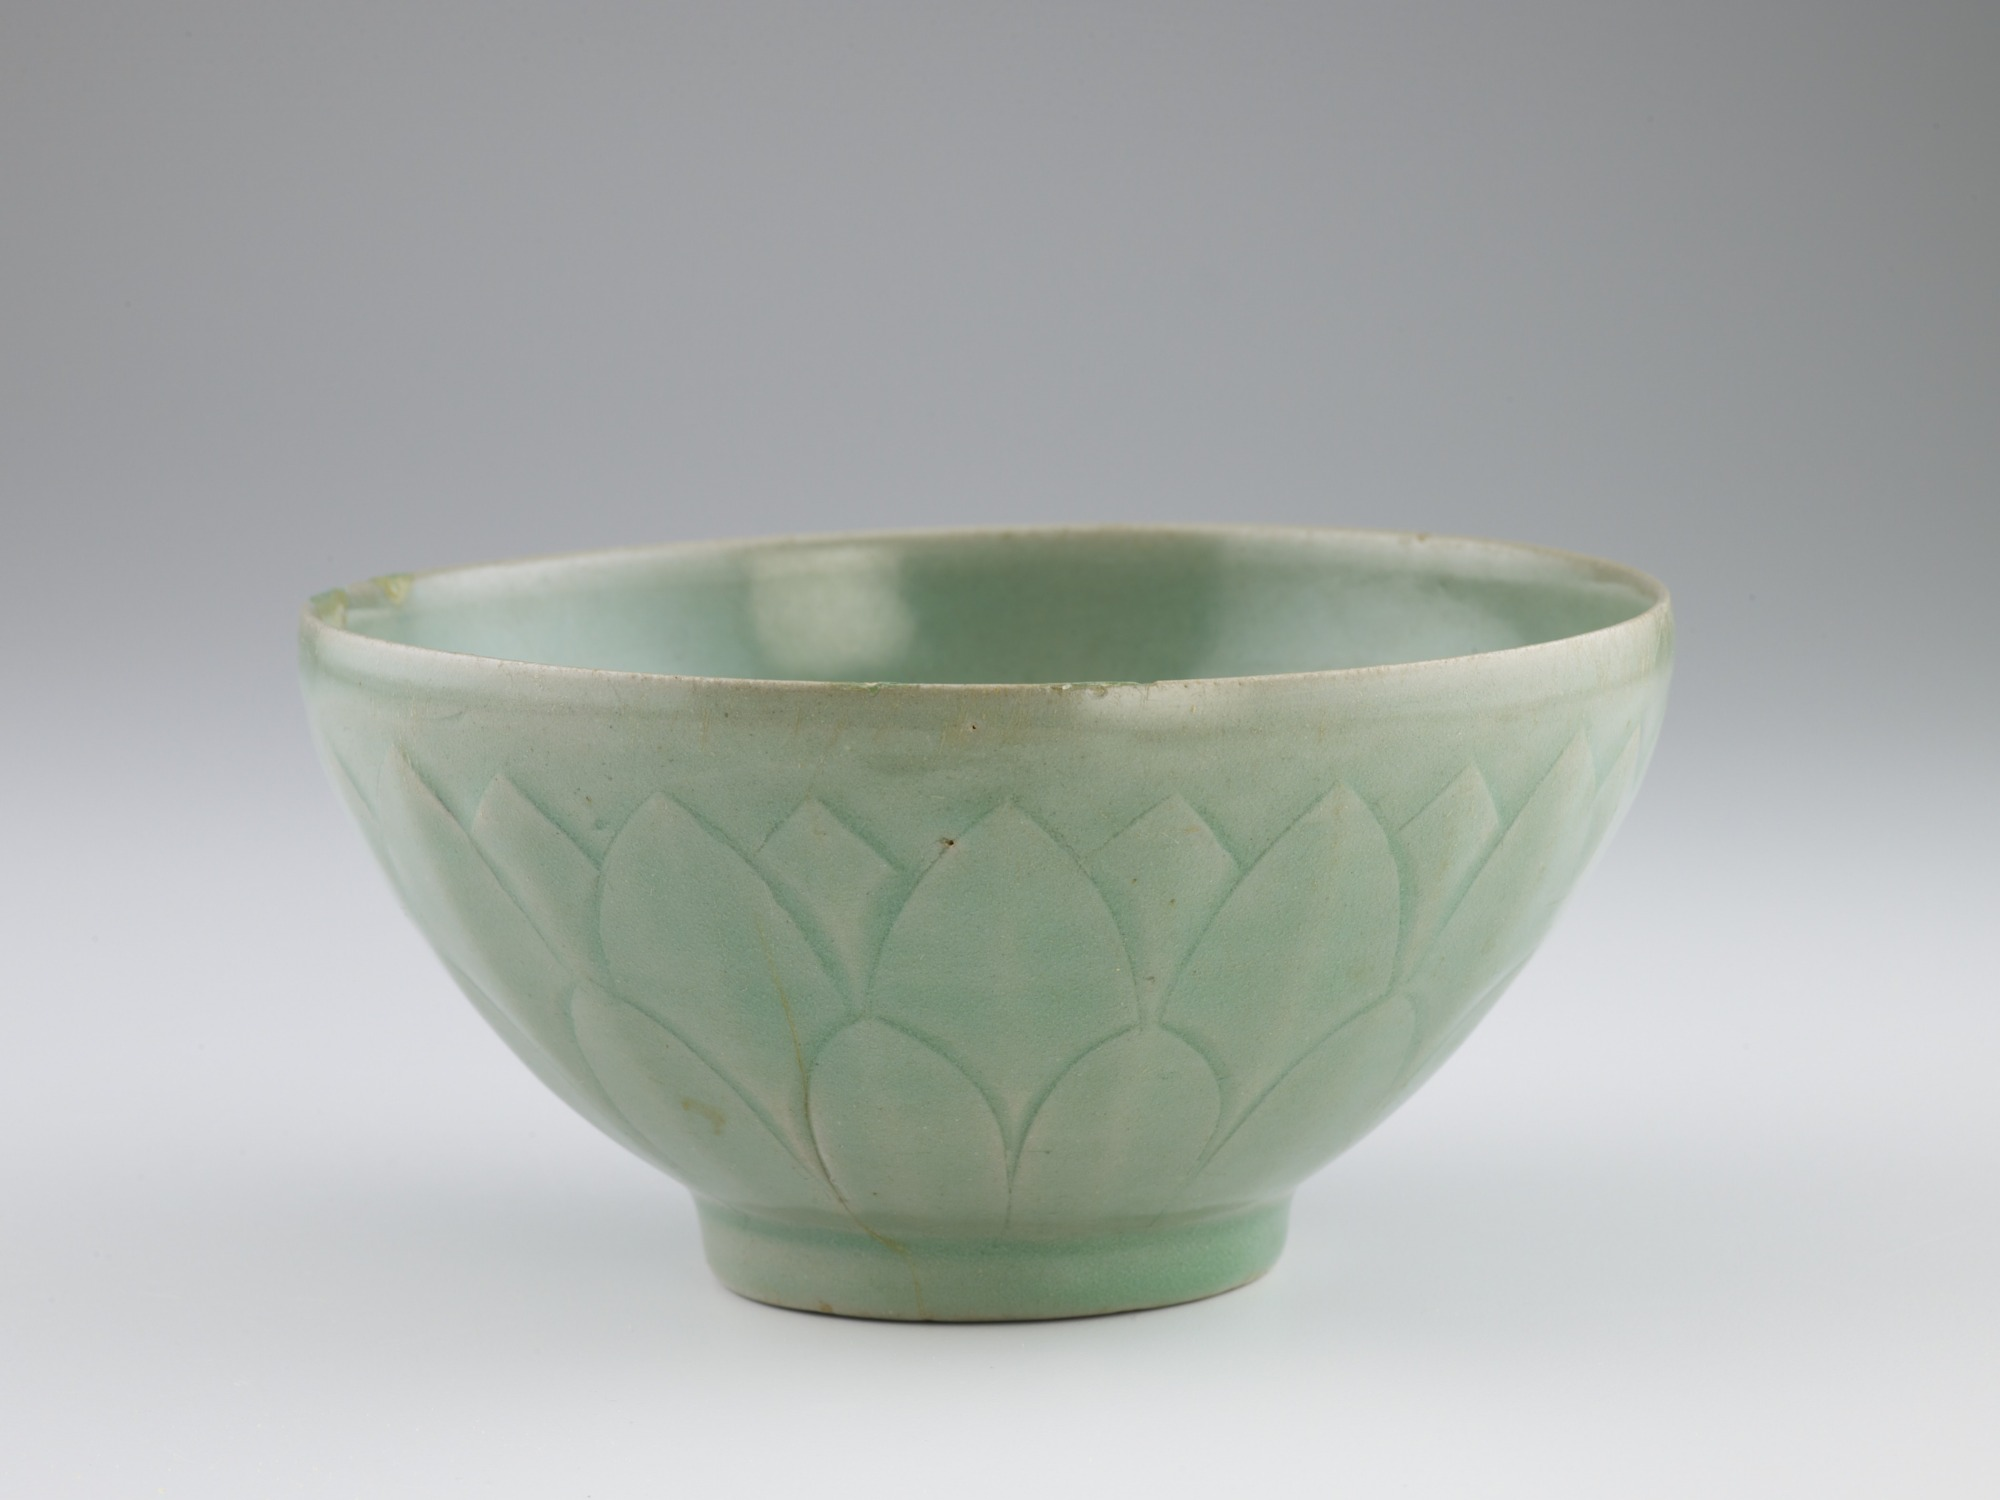 Bowl with molded and carved lotus decoration, profile